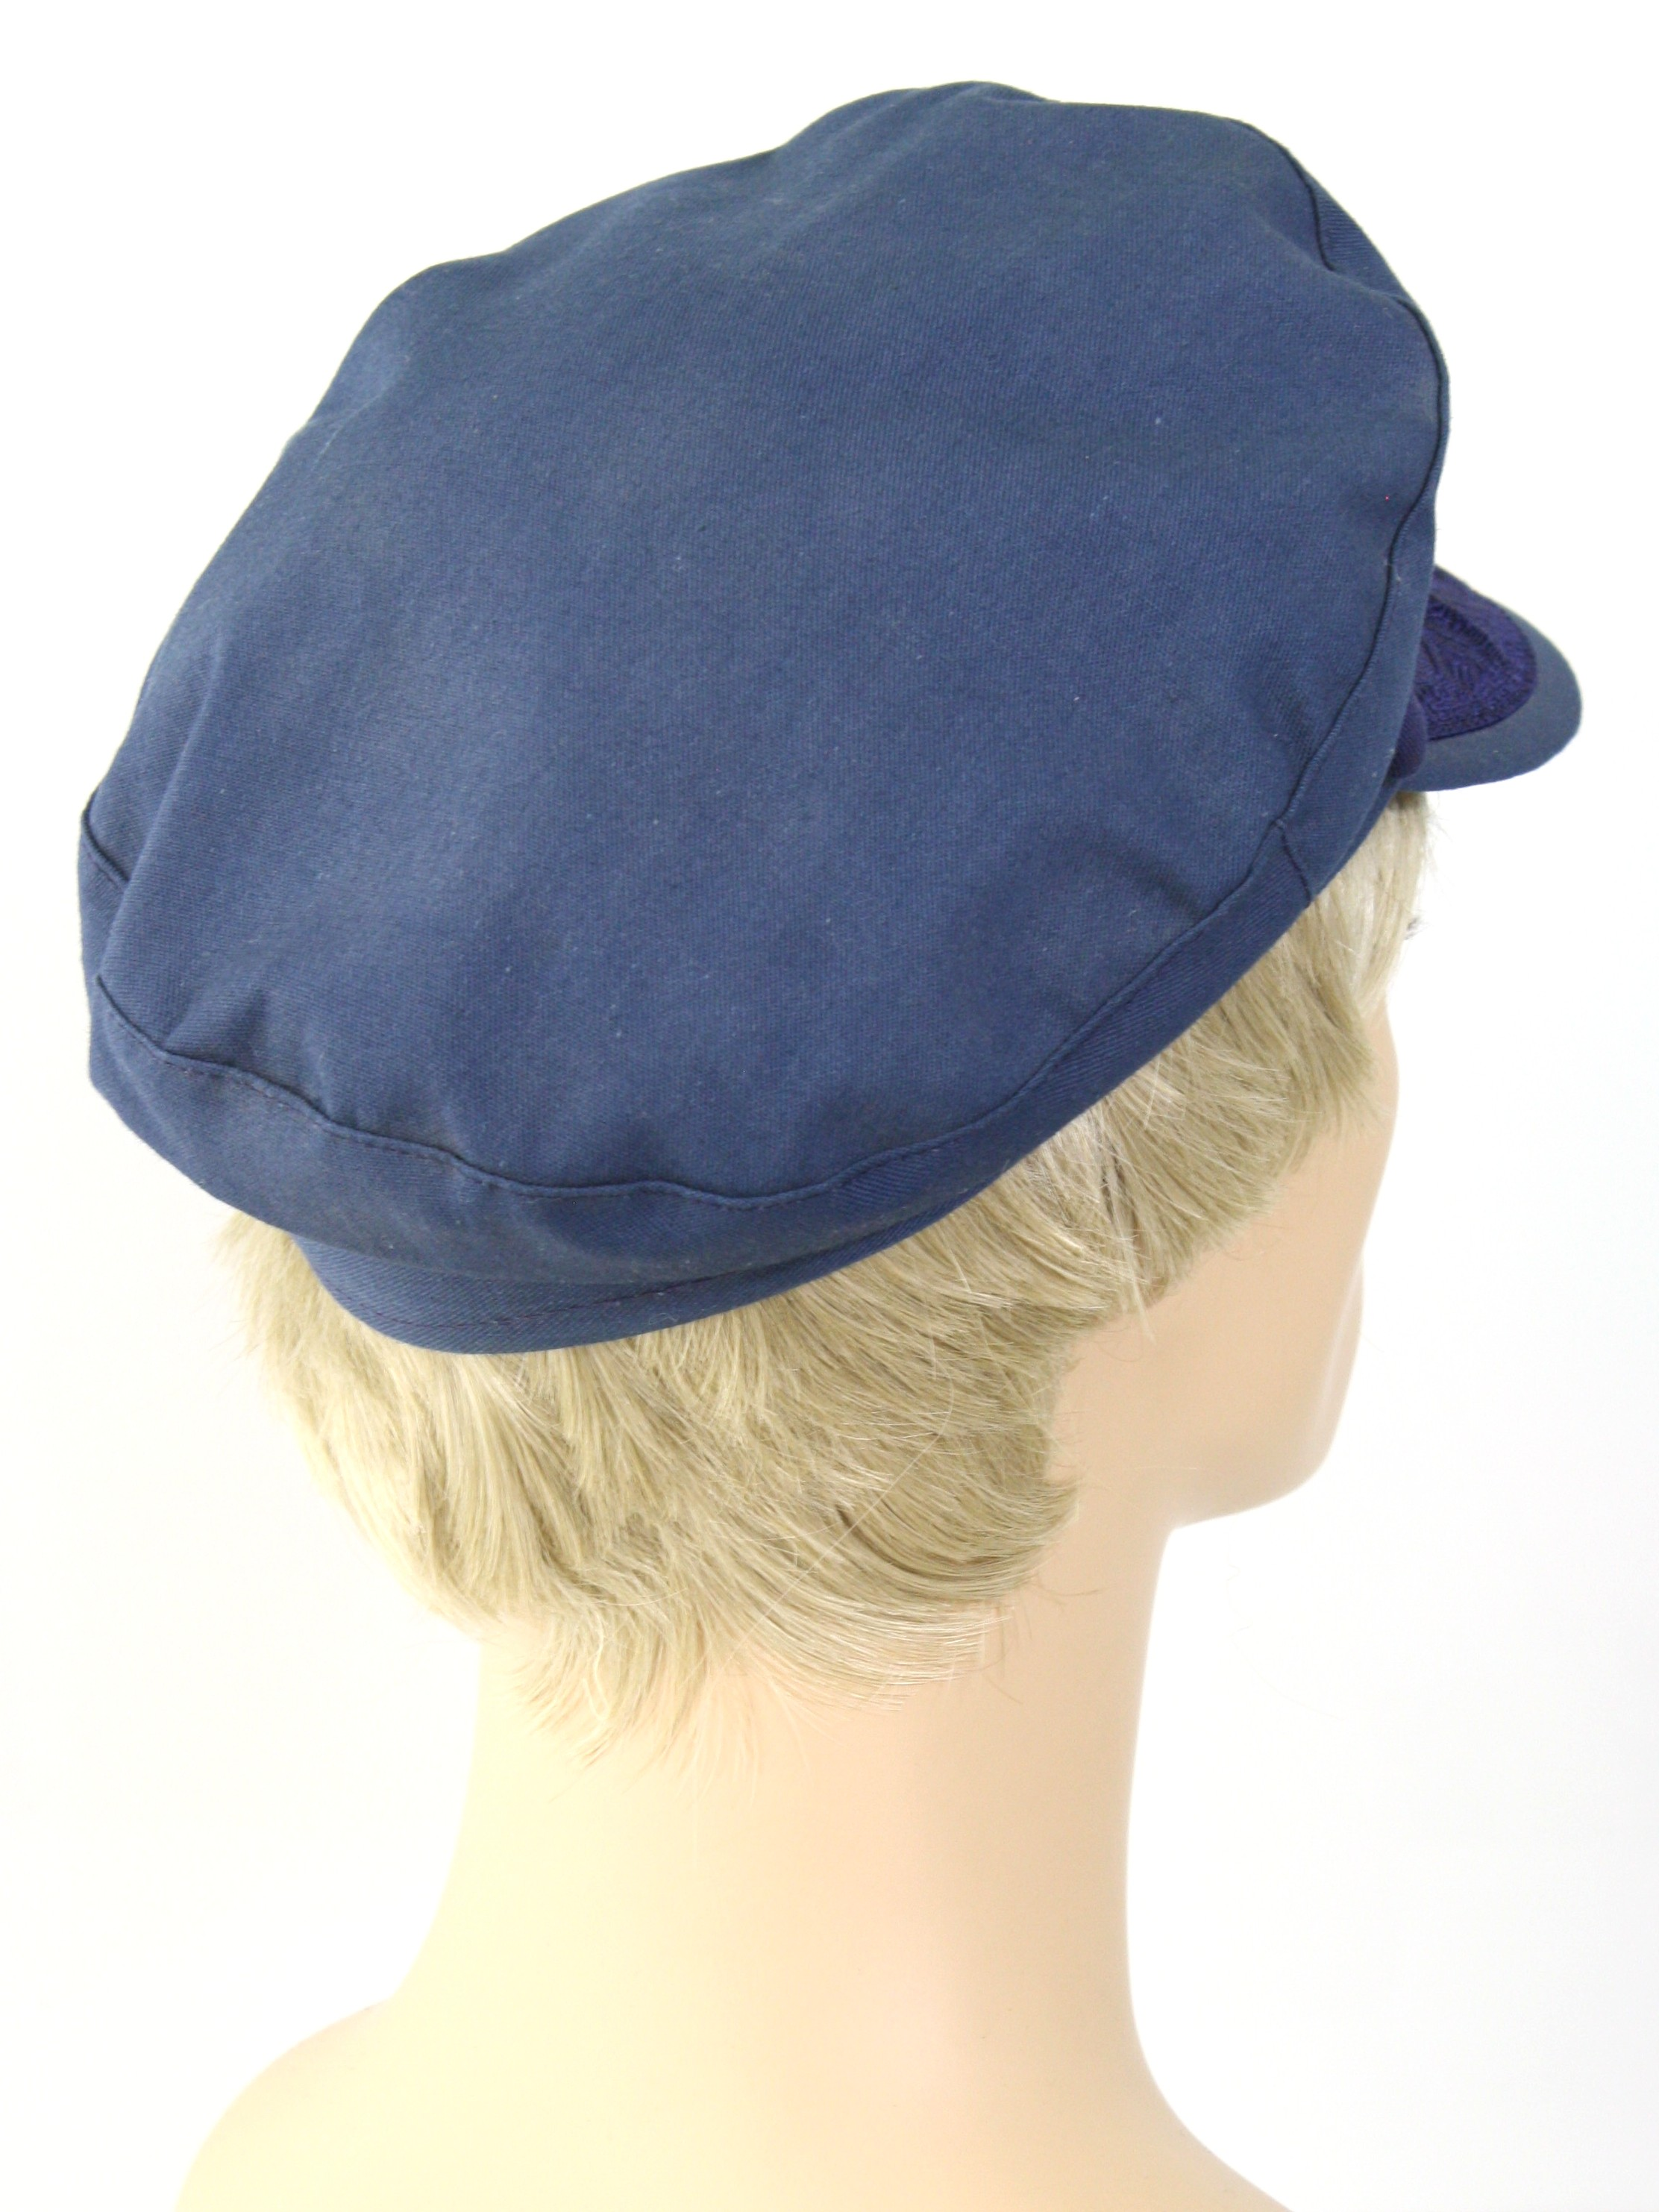 Vintage Fotios 80 s Hat  80s -Fotios- Mens navy blue background cotton  Greek fisherman cap hat with attached navy blue rope along the bill 7c1a240a9bad